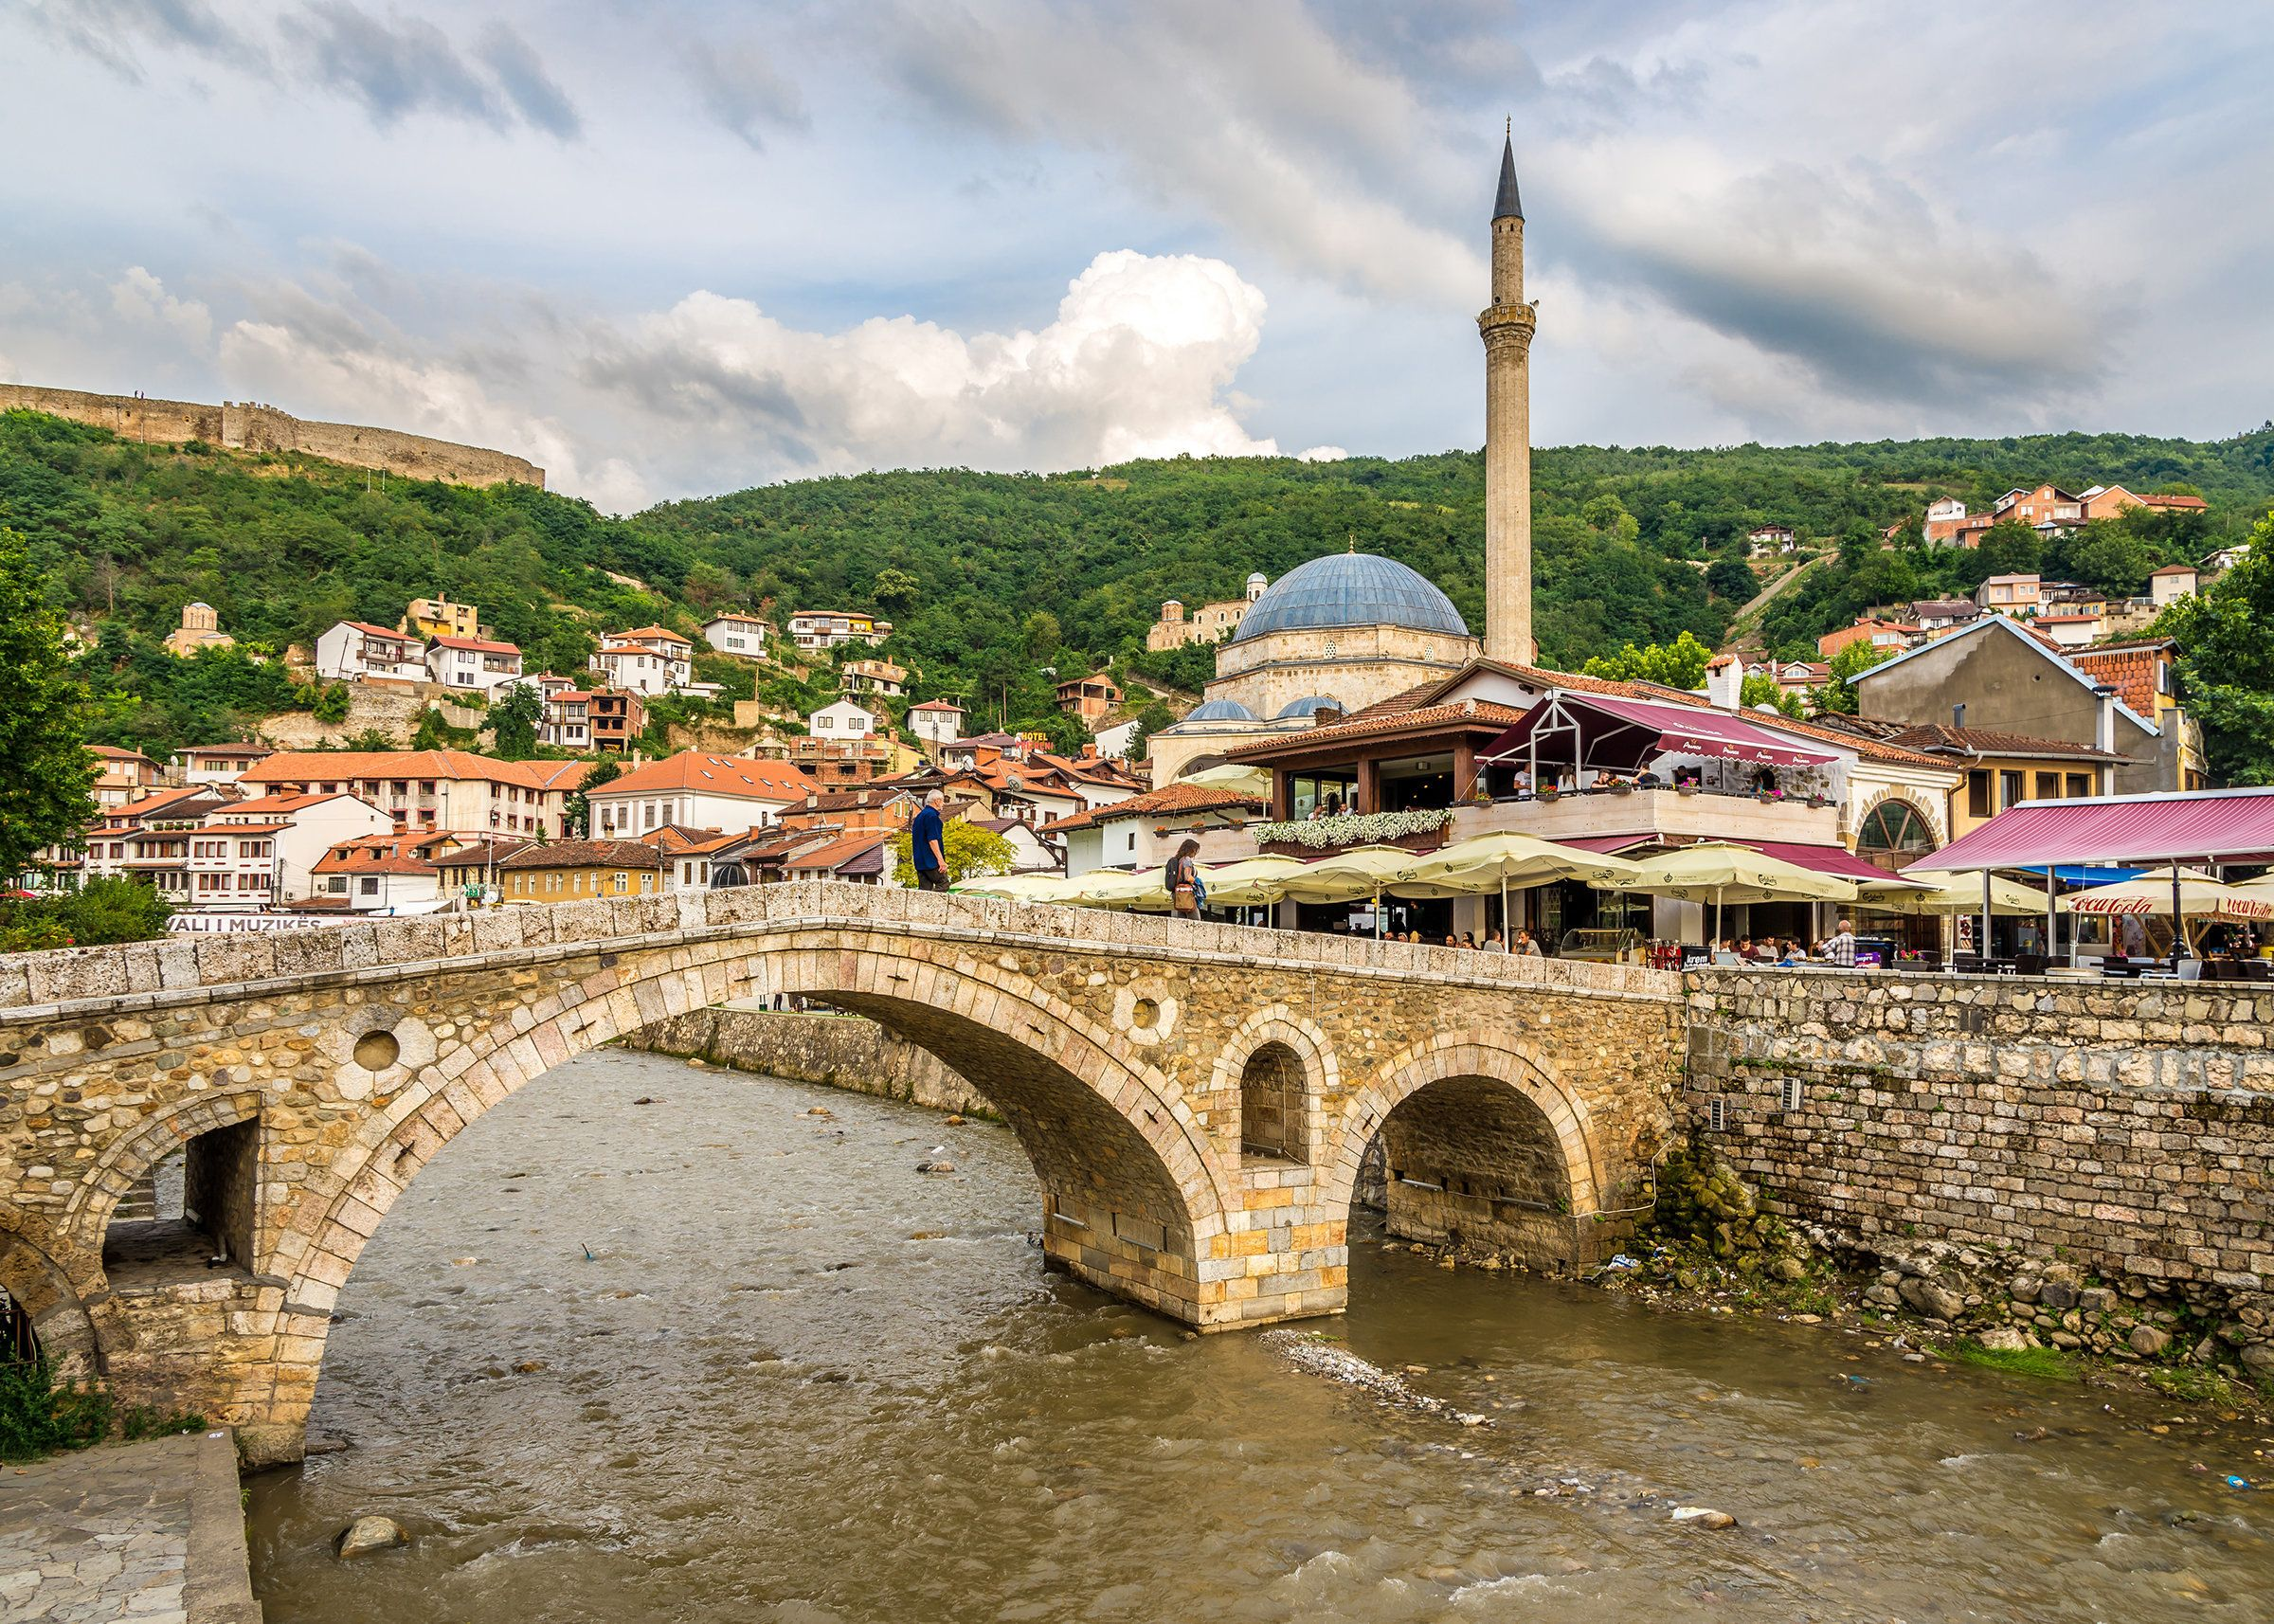 """Tiny <a href=""""https://www.lonelyplanet.com/kosovo/prizren/travel-tips-and-articles/kosovo-calling-a-decade-of-authentic-adven"""